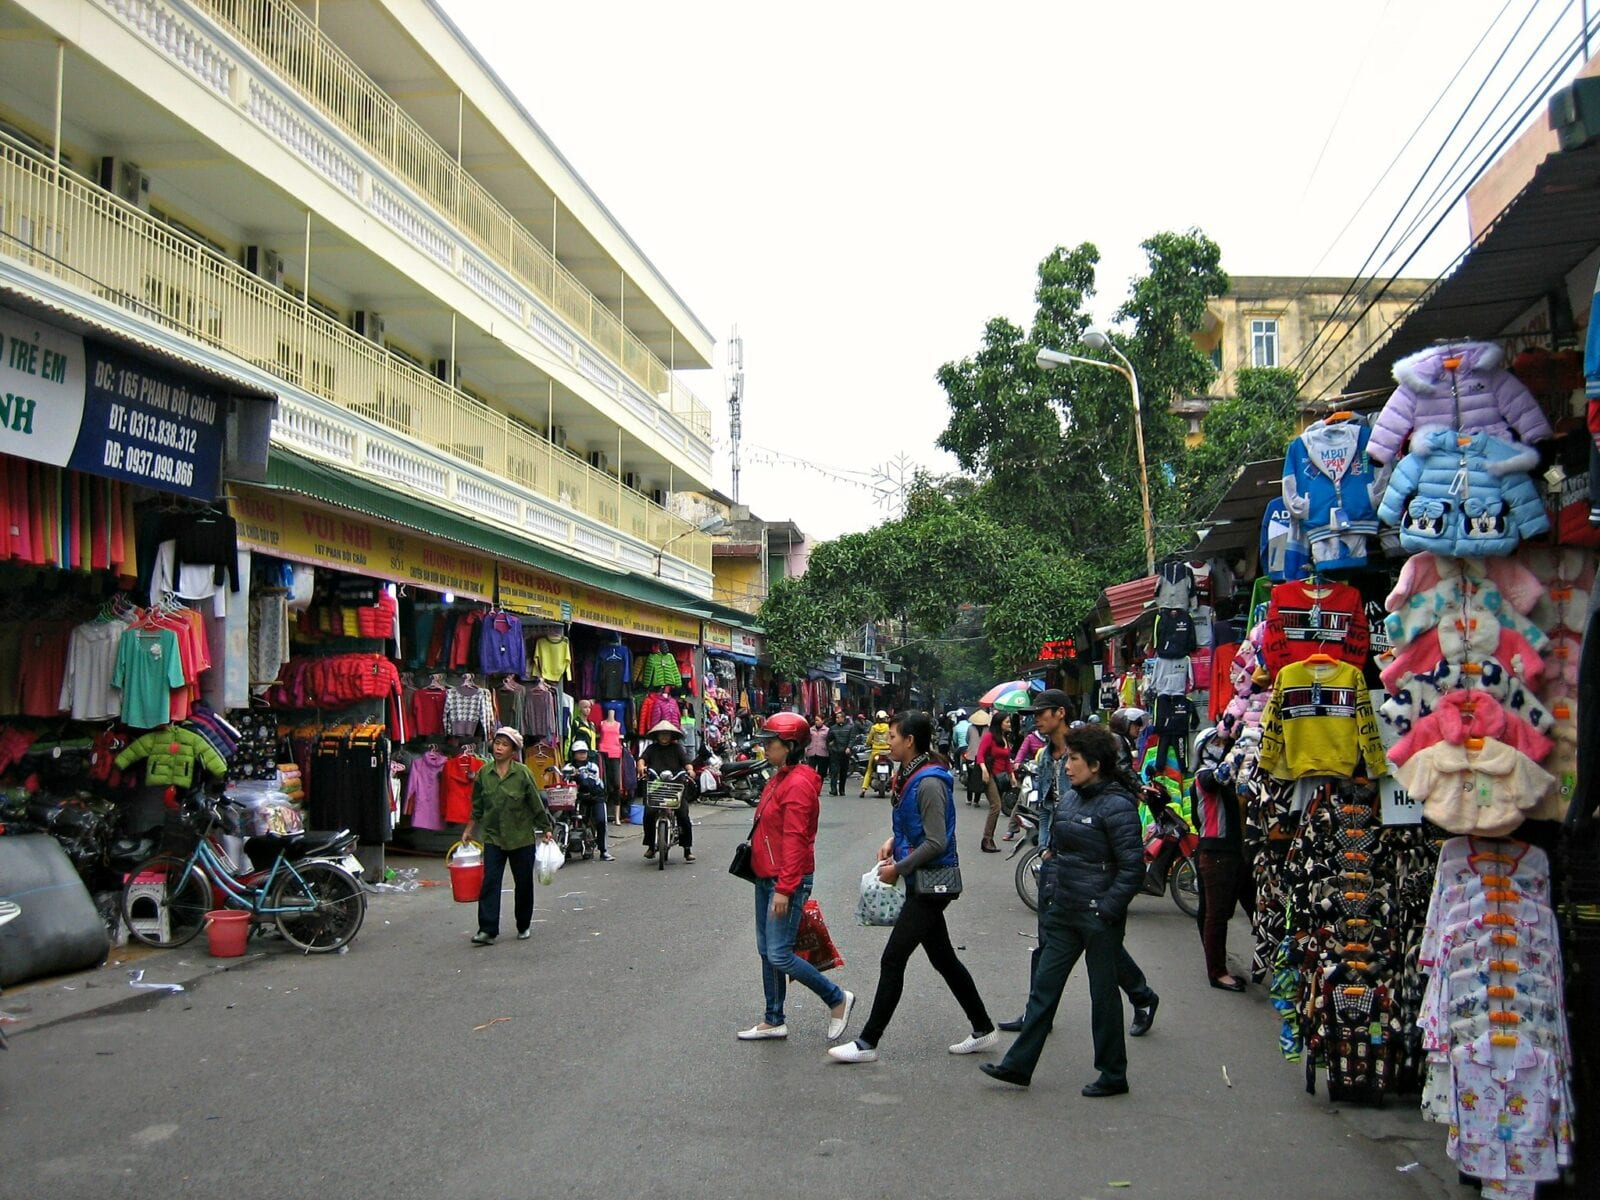 Image of the Hai Phong street scene in Vietnam